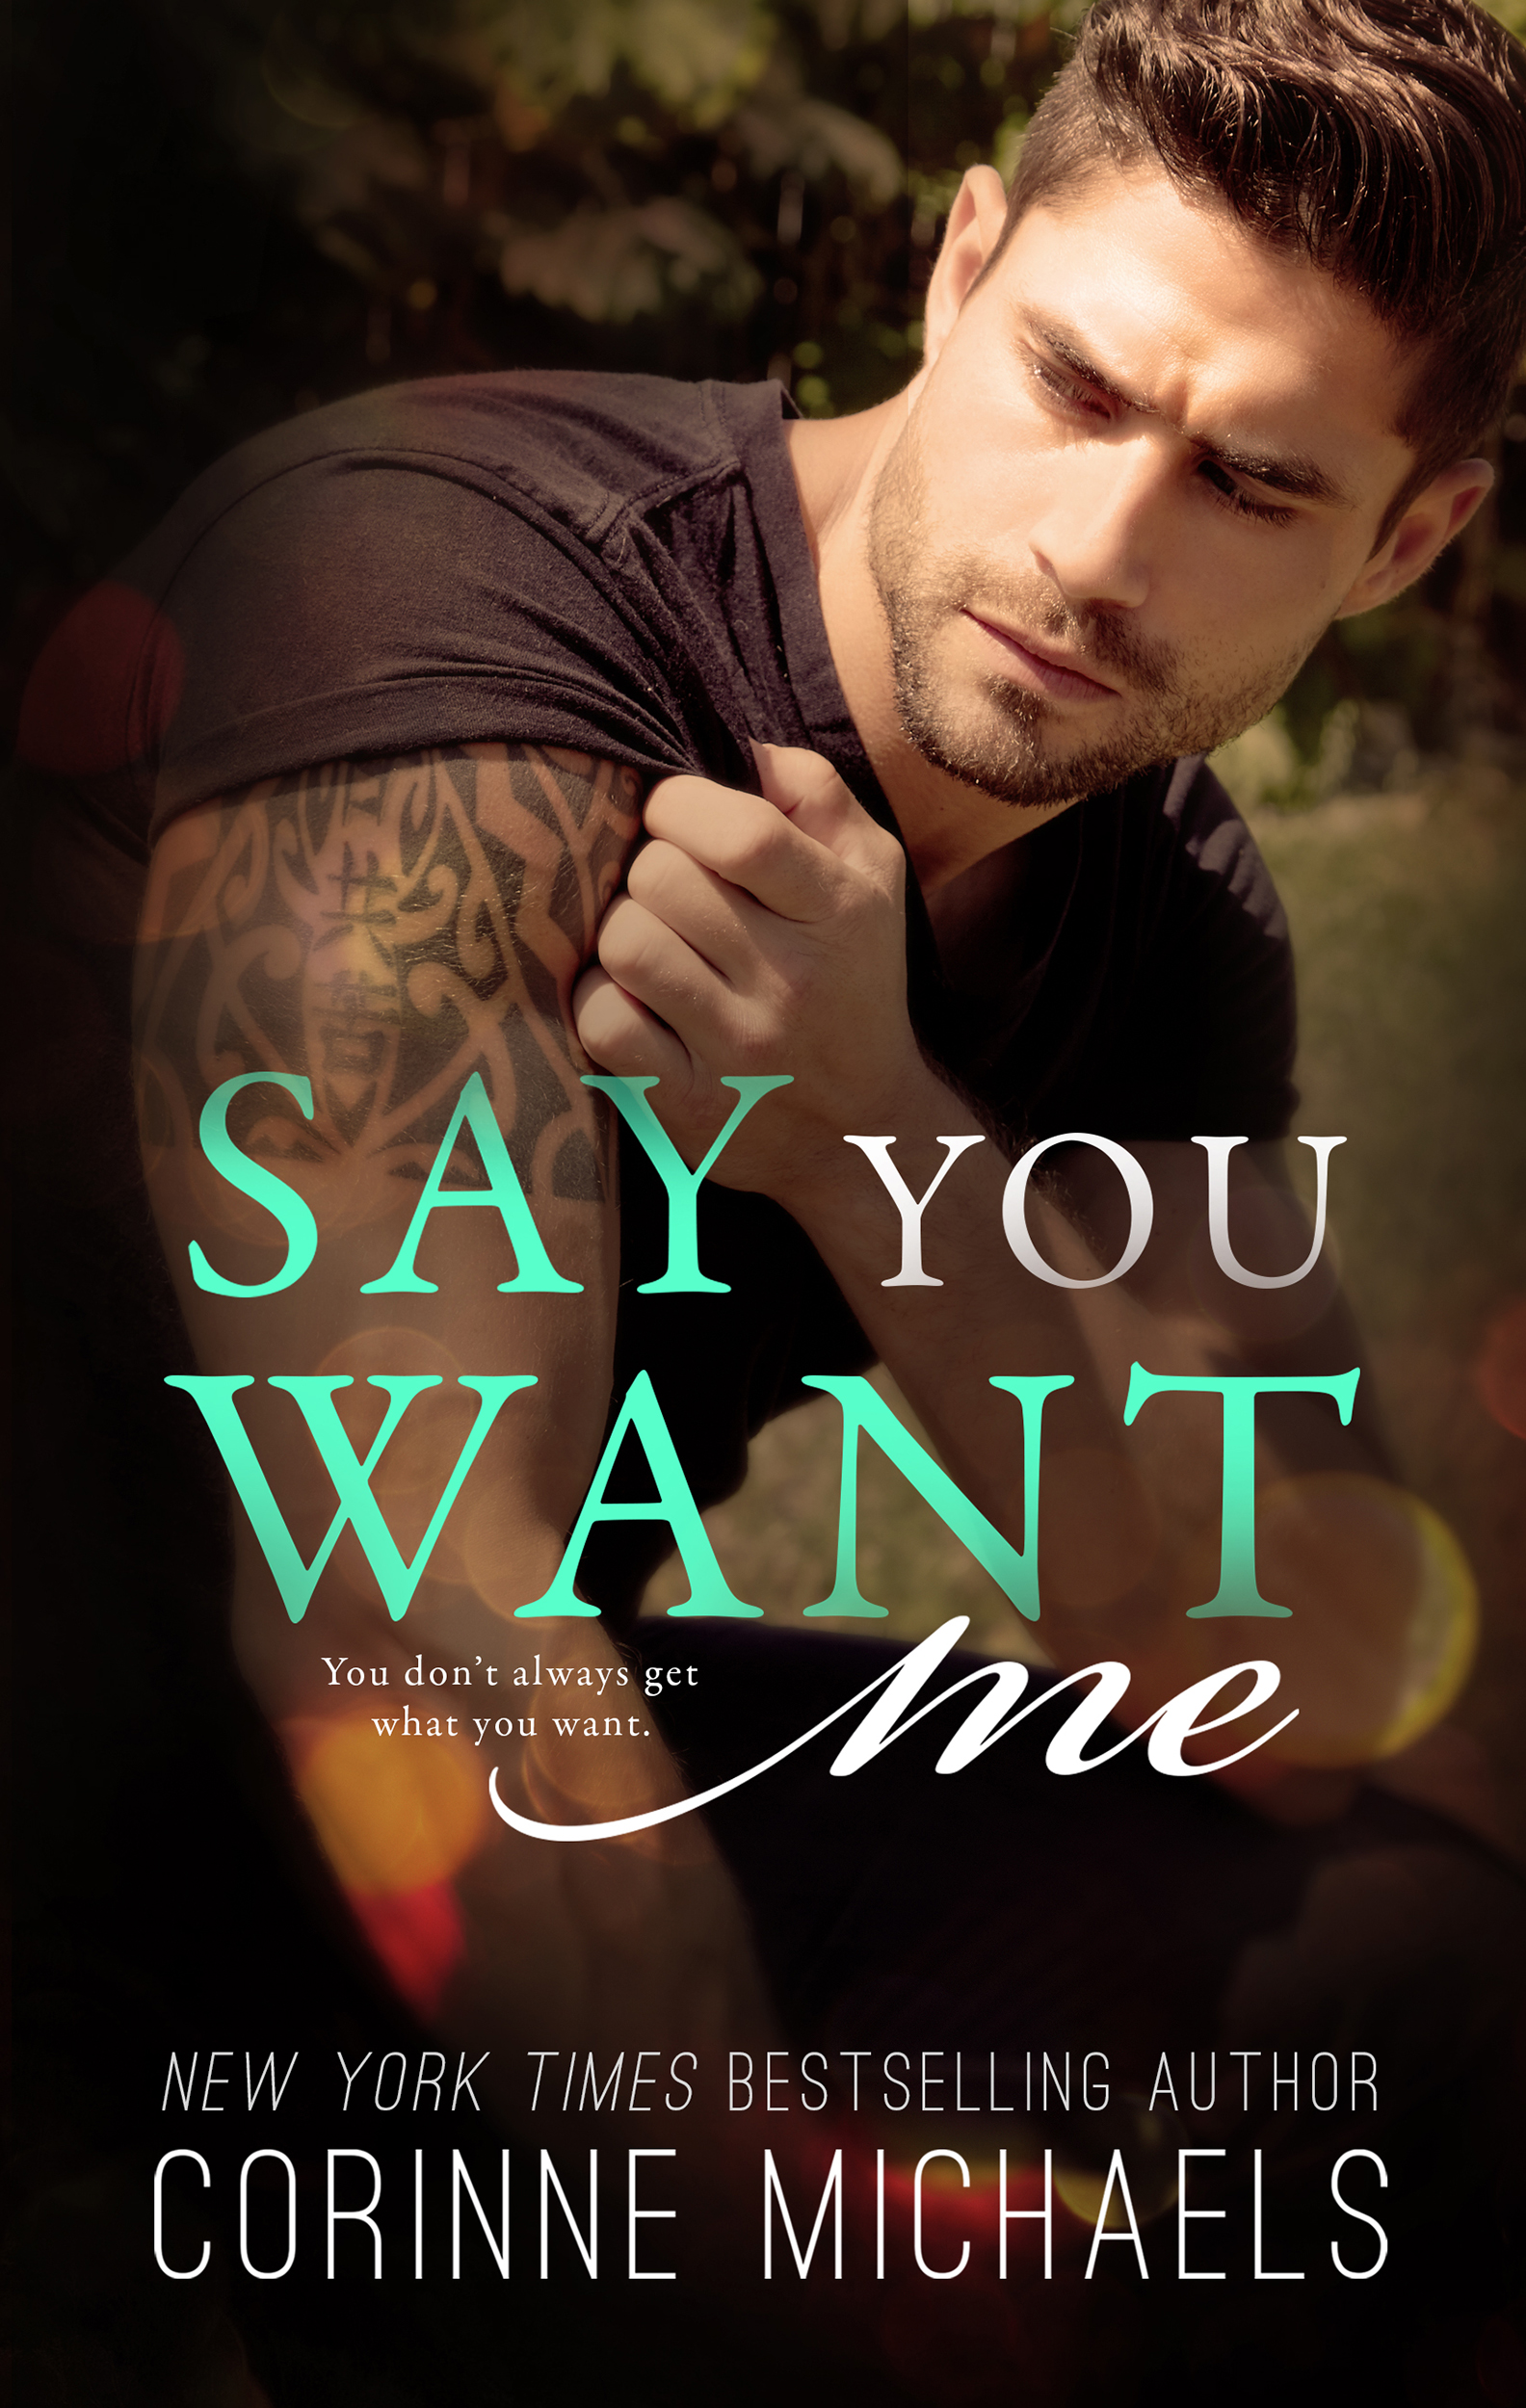 Miss You Libro Corinne Michaels Say You Want Me Cover Reveal